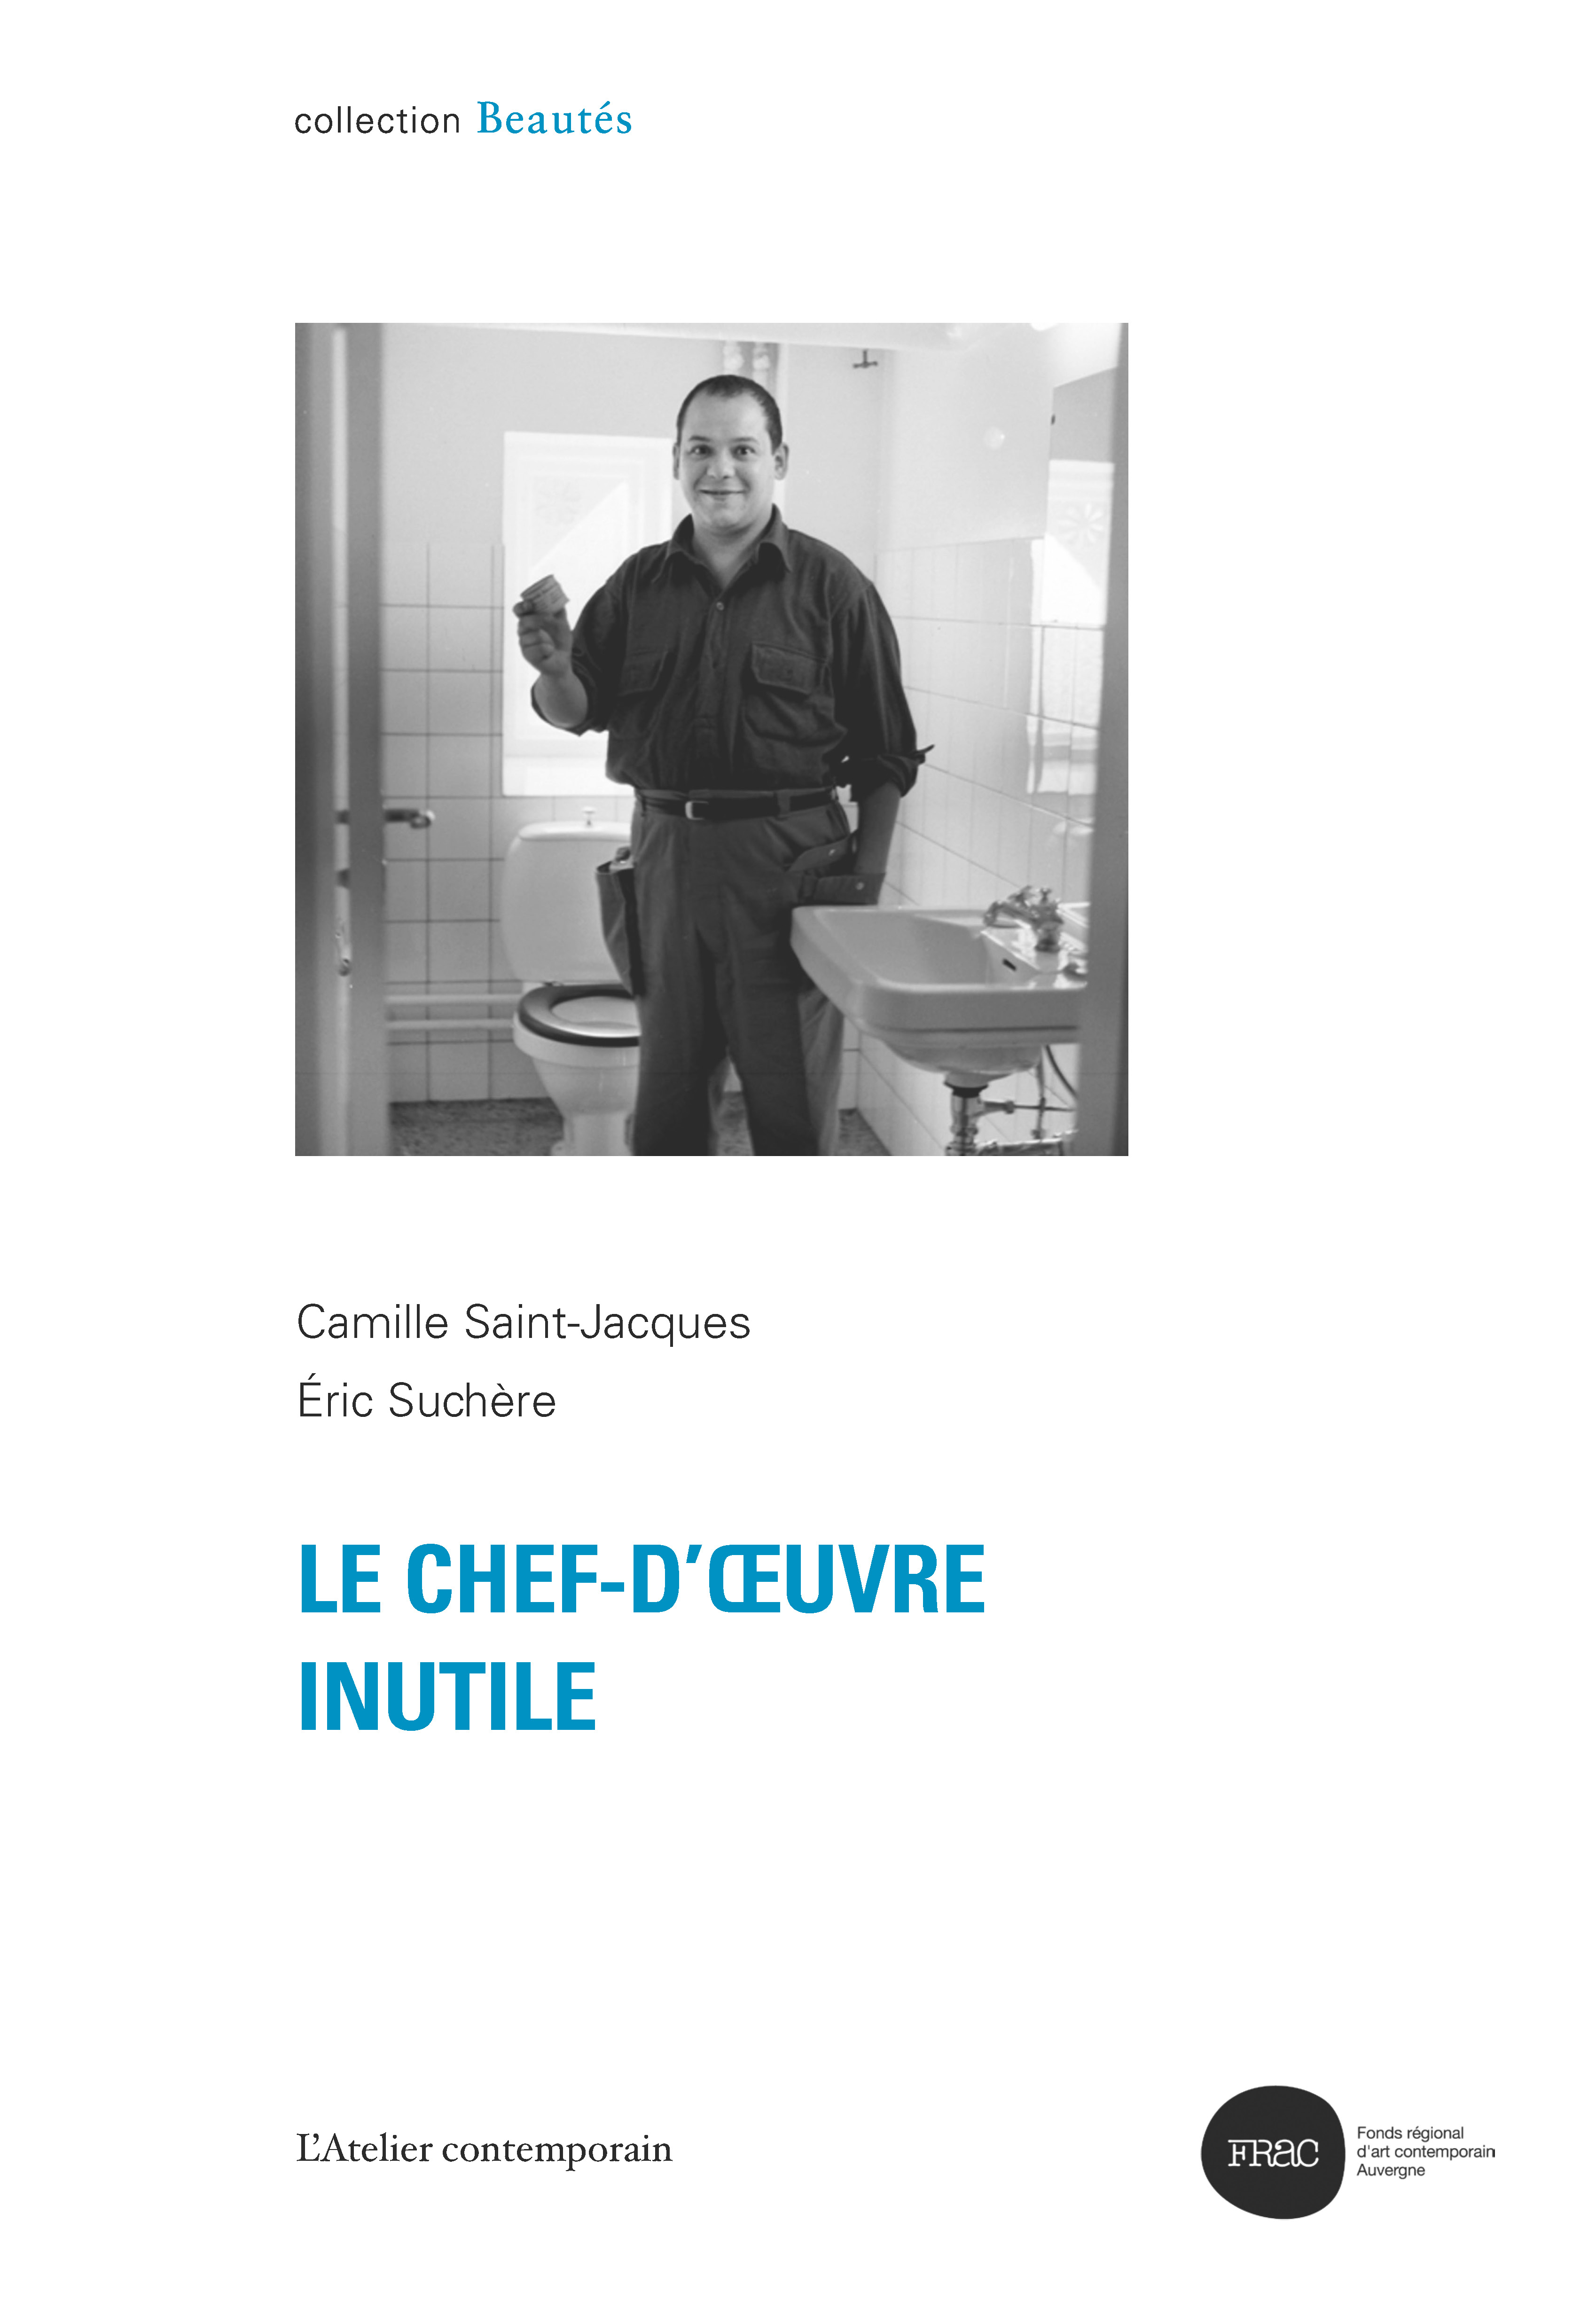 Chef-d'oeuvre ou pas chef-d'oeuvre?